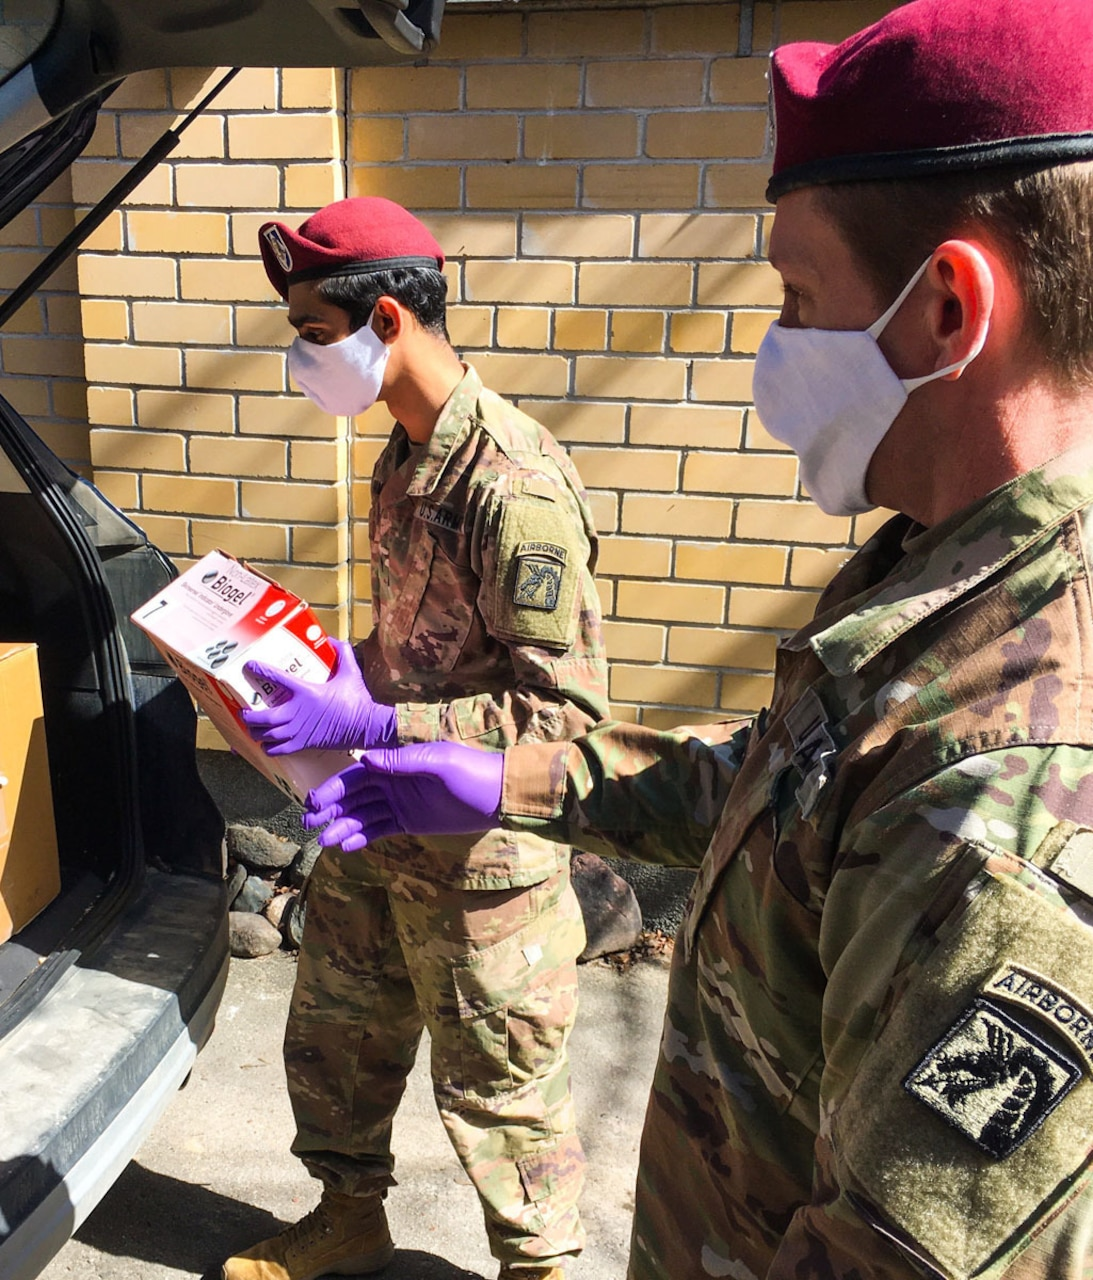 Two uniformed service members wearing face masks and gloves unload medical gear from the back of a vehicle.